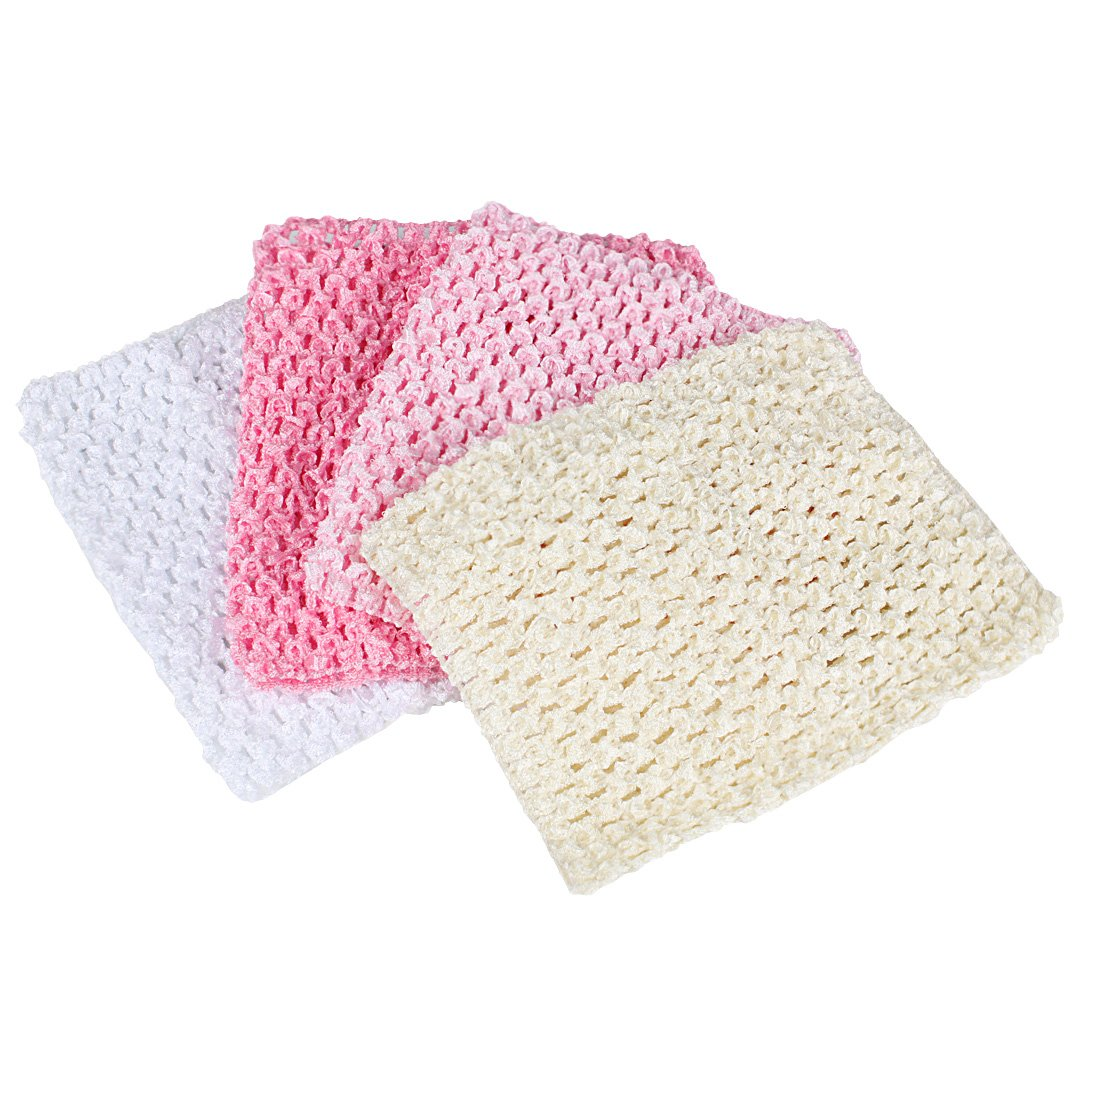 Andux 6 Inch Assorted colors Baby Girl Crochet Tutu Tube Tops Chest Wrap Wide Crochet Headbands Pack of 4 ETMX-01